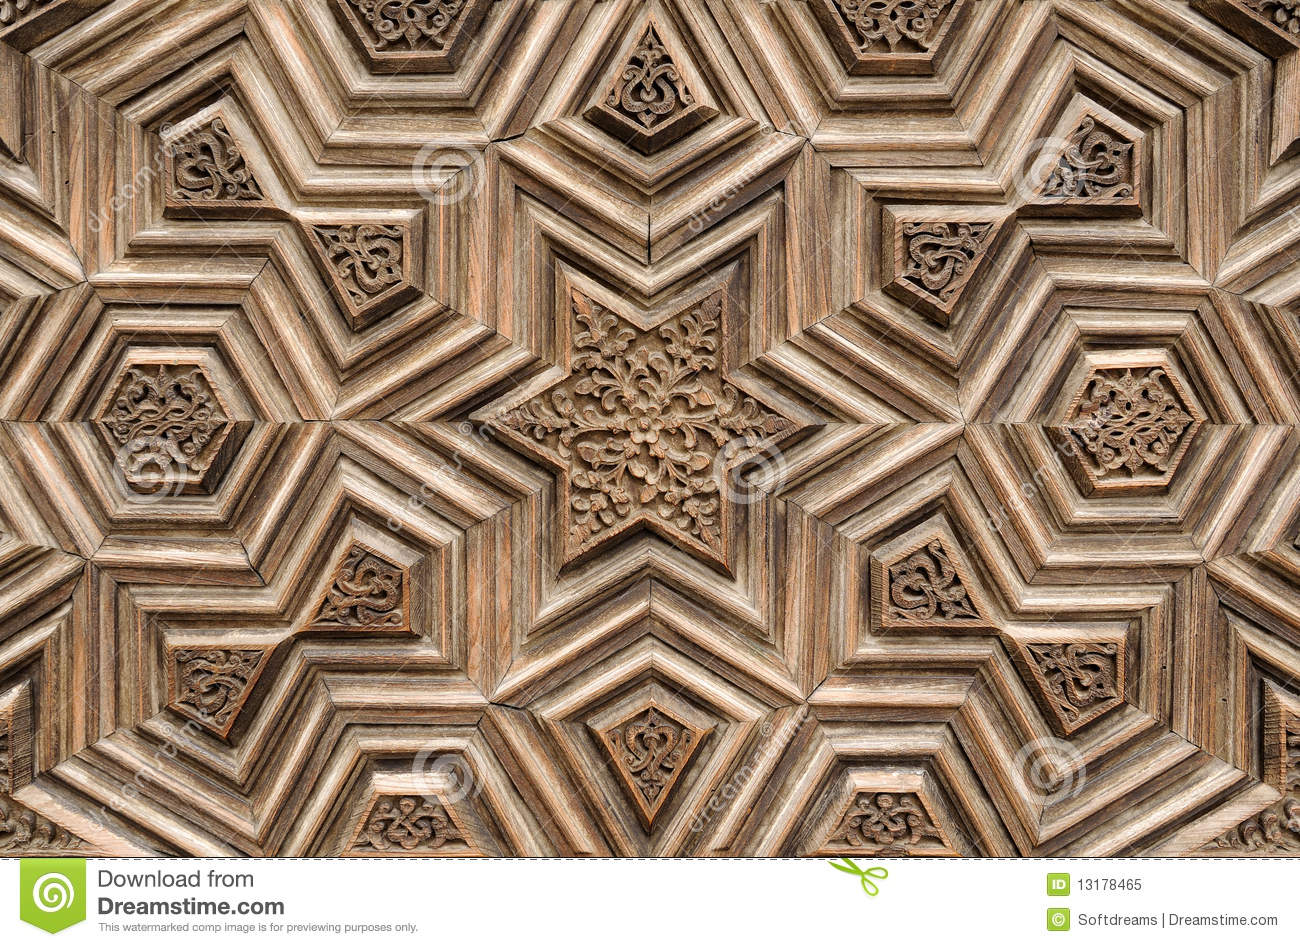 Wood Carving Royalty Free Stock Photo - Image: 13178465